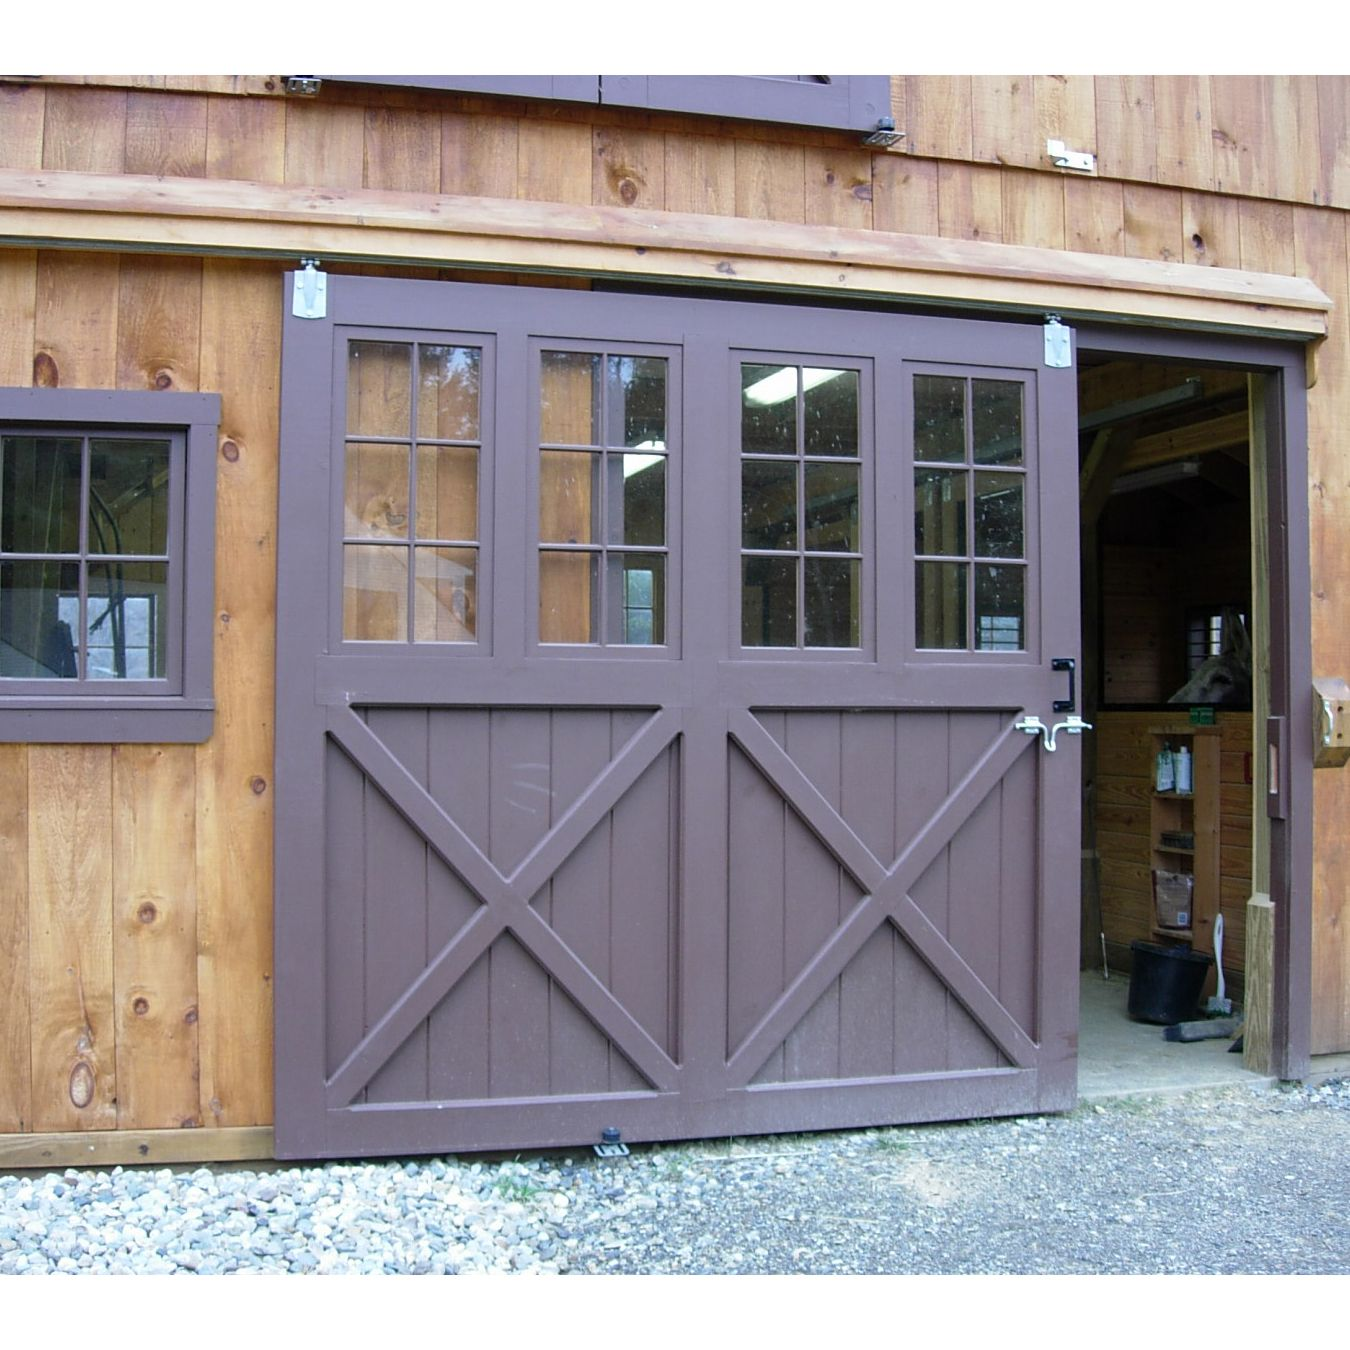 Sliding Dutch Barn Doors Handsome For A Workshop Barn Style